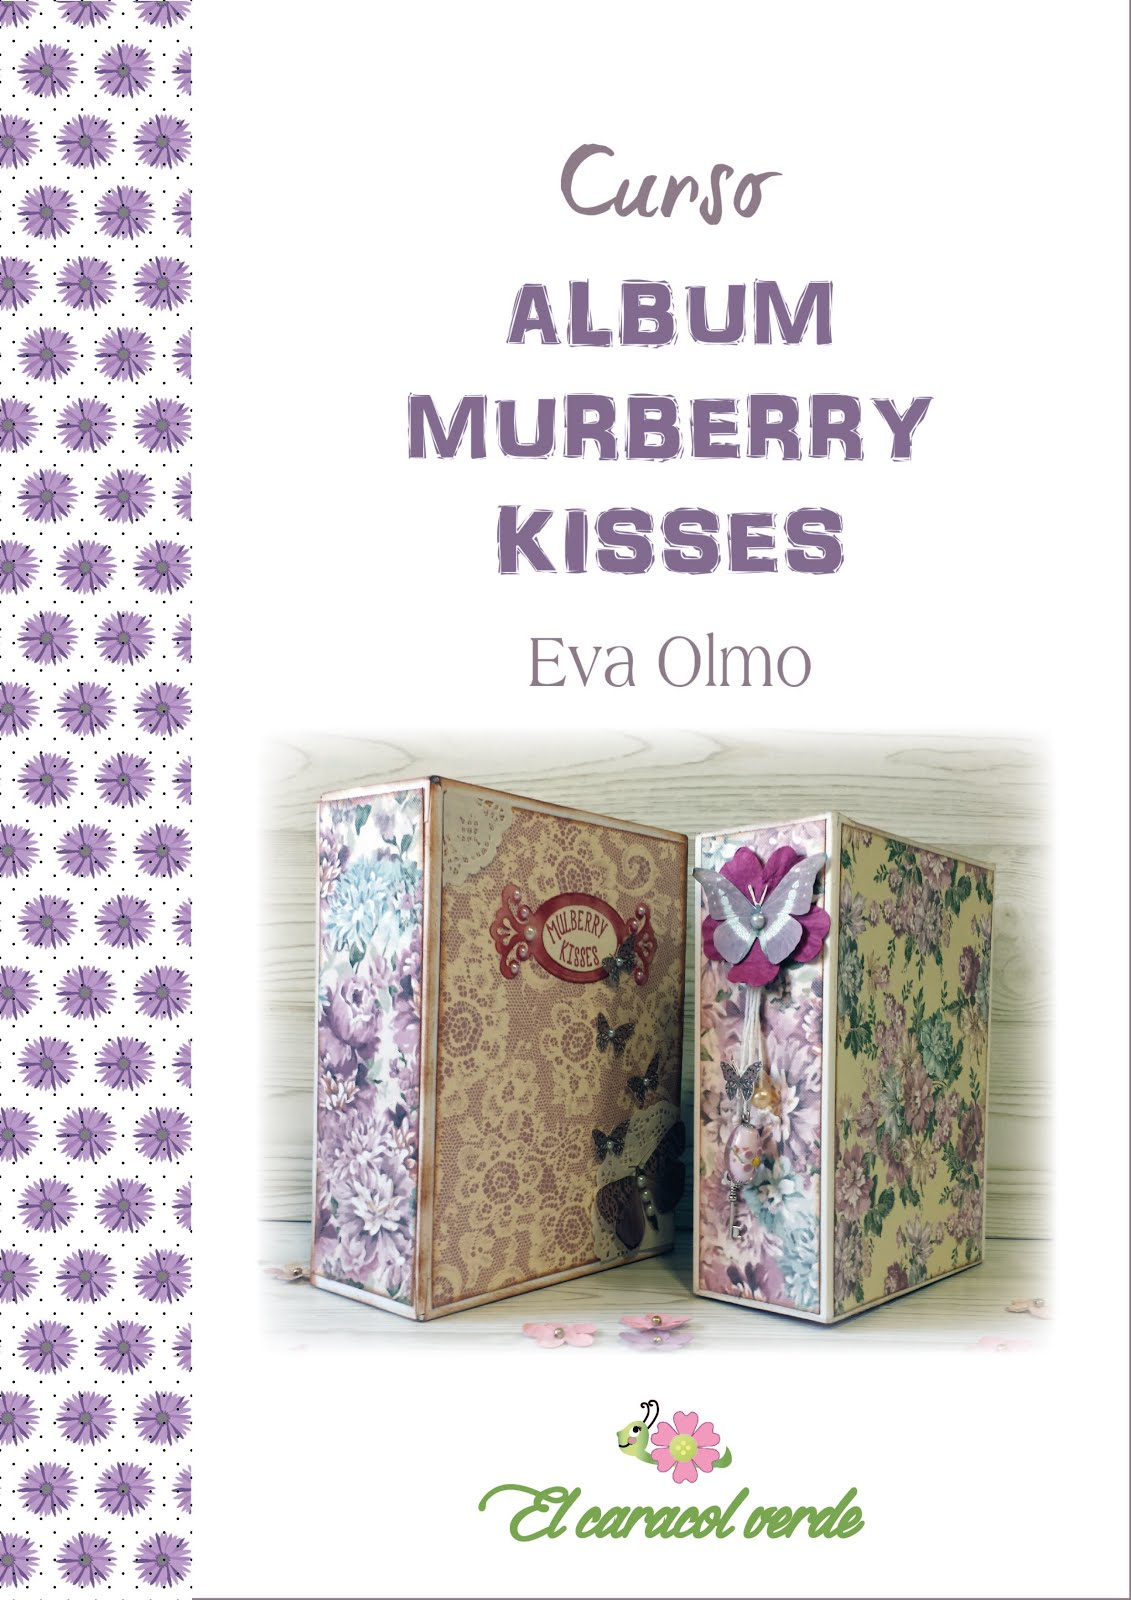 Curso Album Murberry Kisses